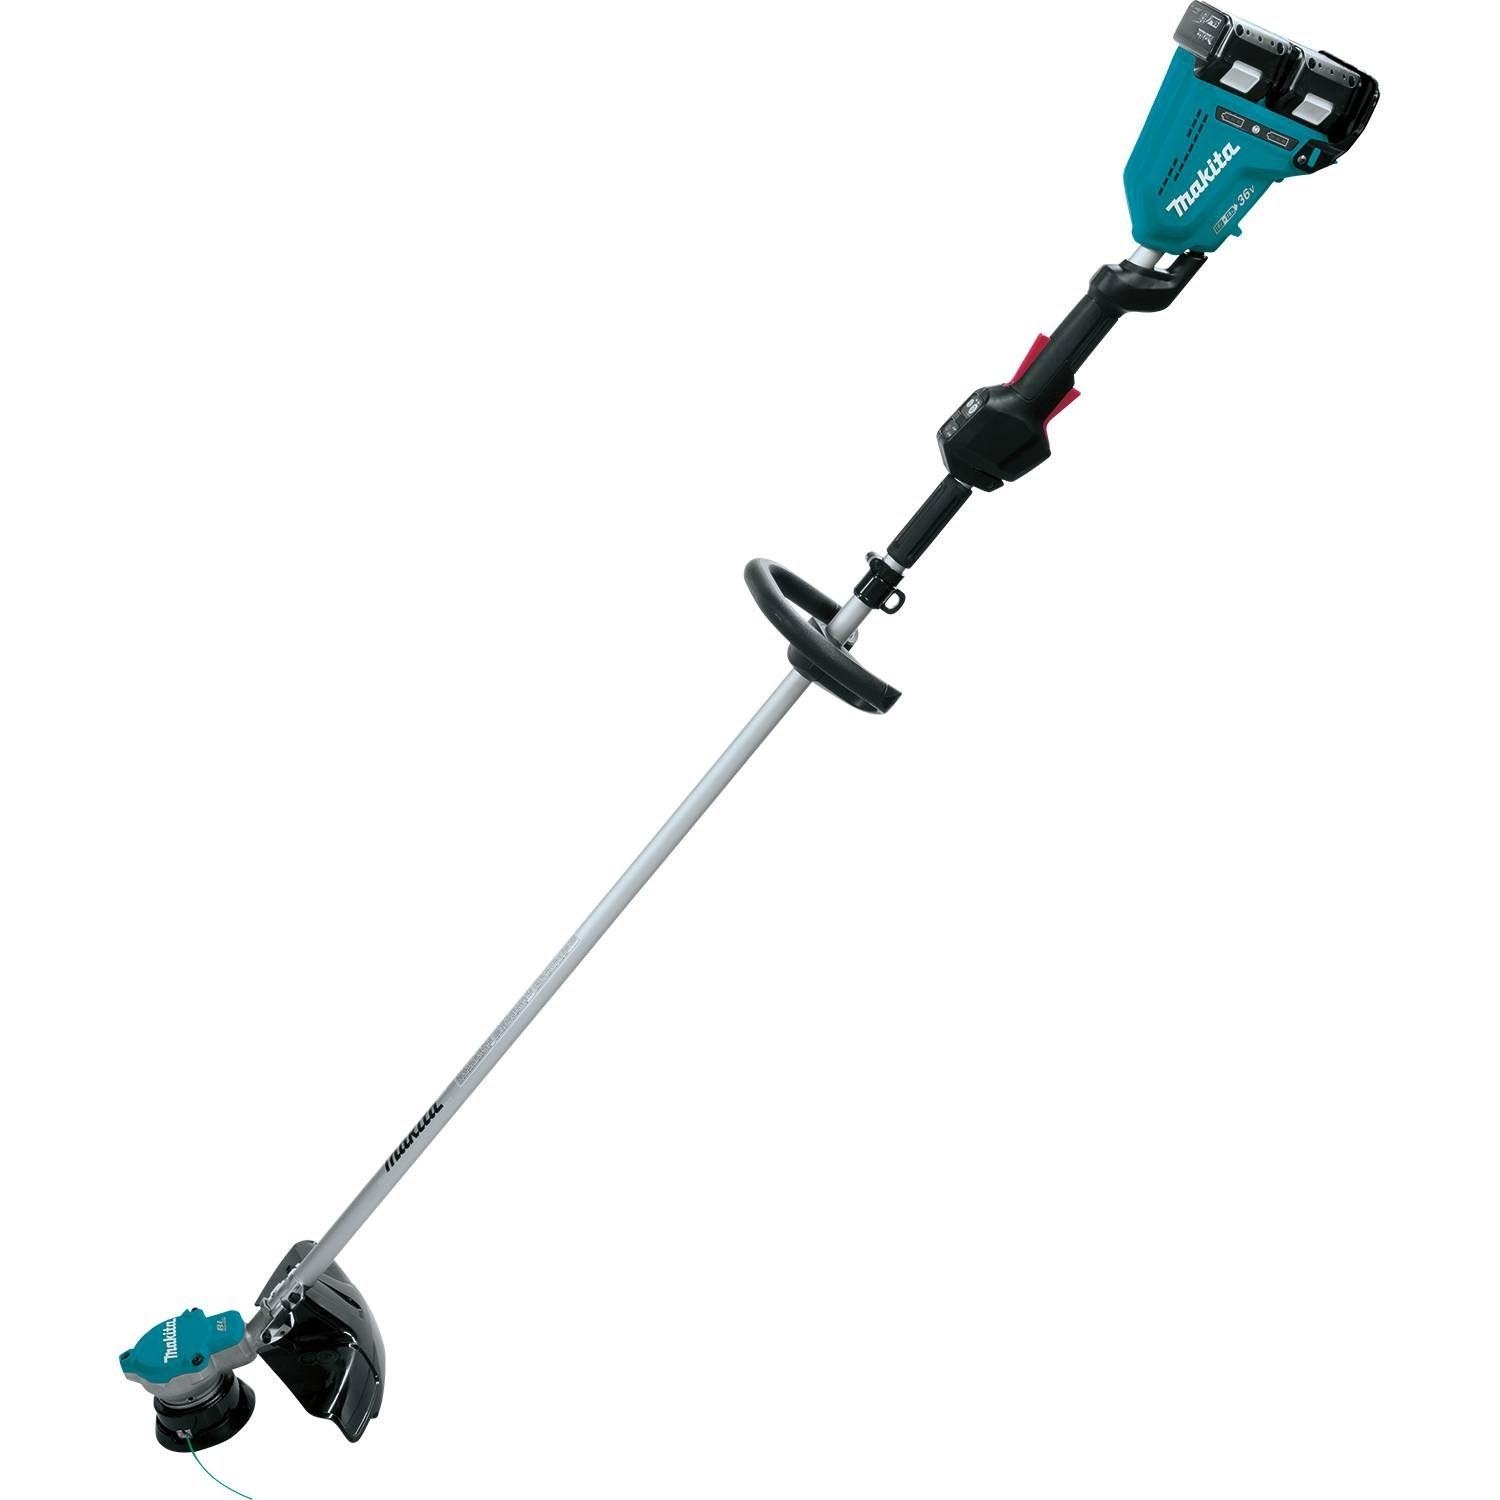 makita 18 volt x2 lxt lithium ion battery cordless electric string trimmer kit ebay. Black Bedroom Furniture Sets. Home Design Ideas